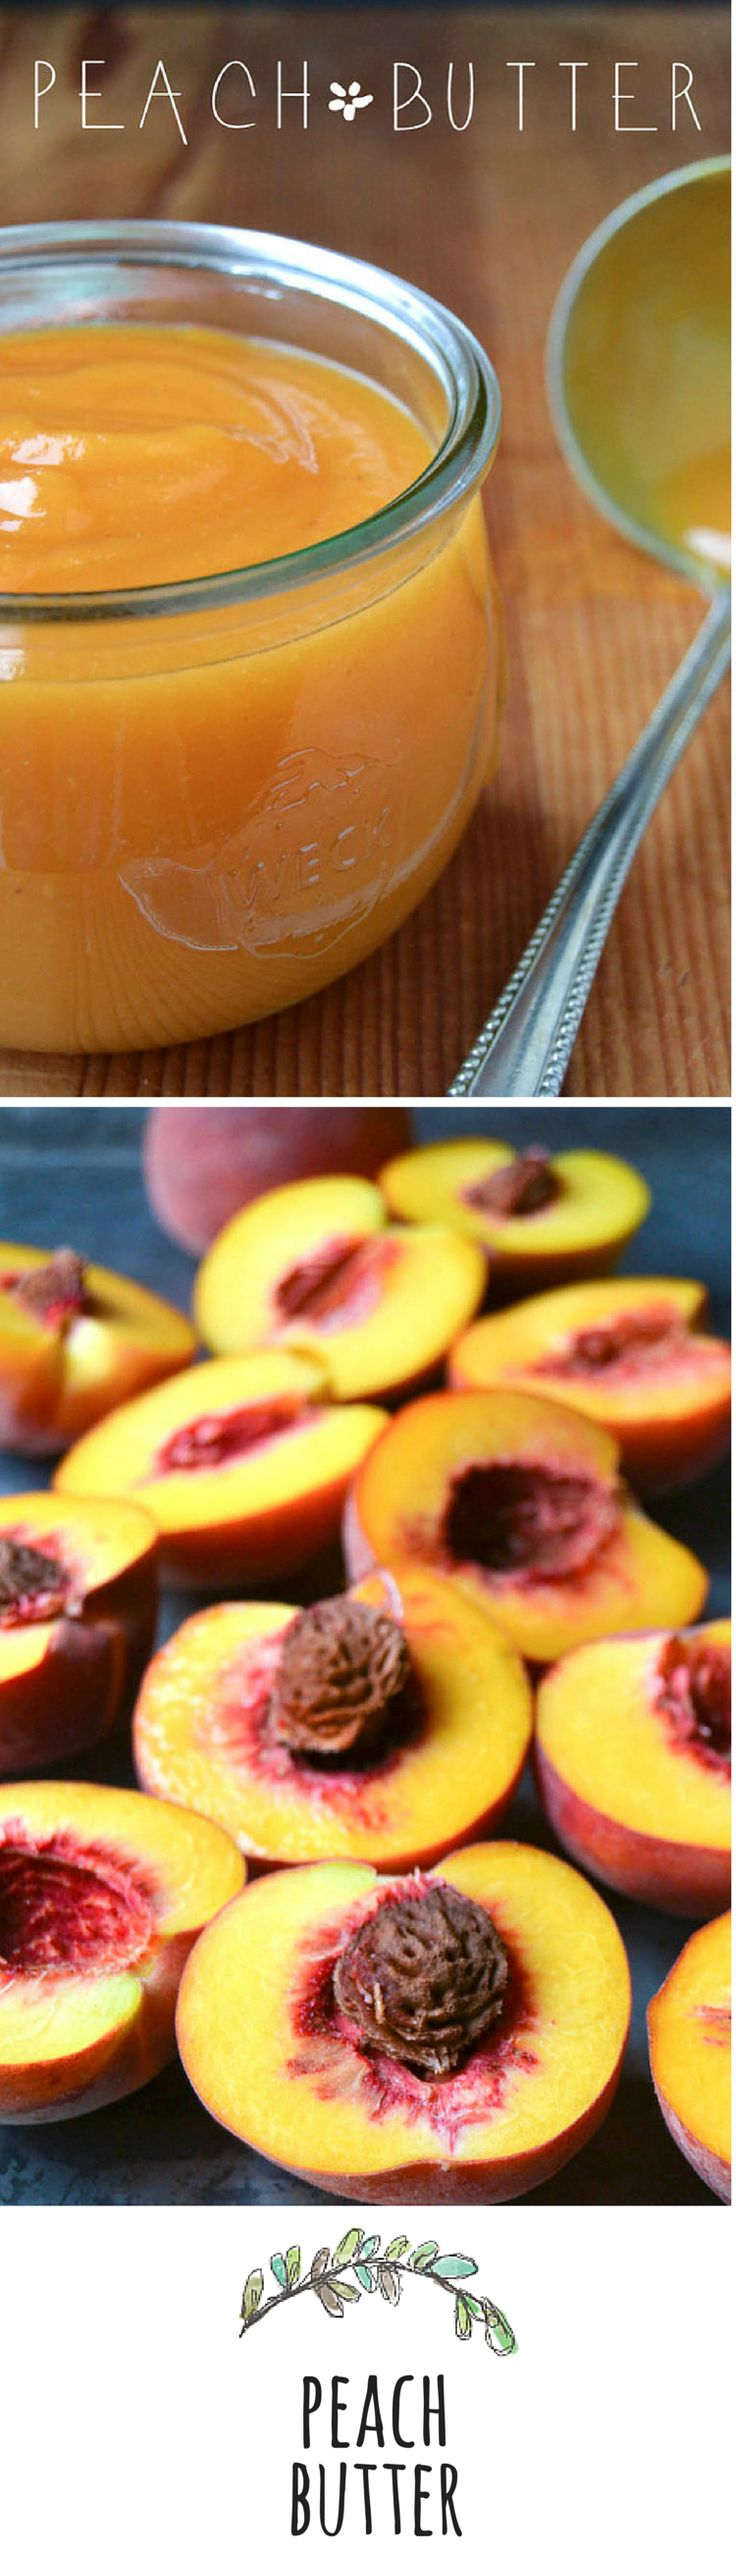 """From Someone who likes to keep her recipes pure -  this one uses little sugar (1/2 cup); Sue chooses to use Lemon Juice to make the PEACH flavor """"pop""""...  TIP: if you like you could add some vanilla bean... **  You won't find a more intense peach flavor anywhere!  #PeachButter   #Pure"""